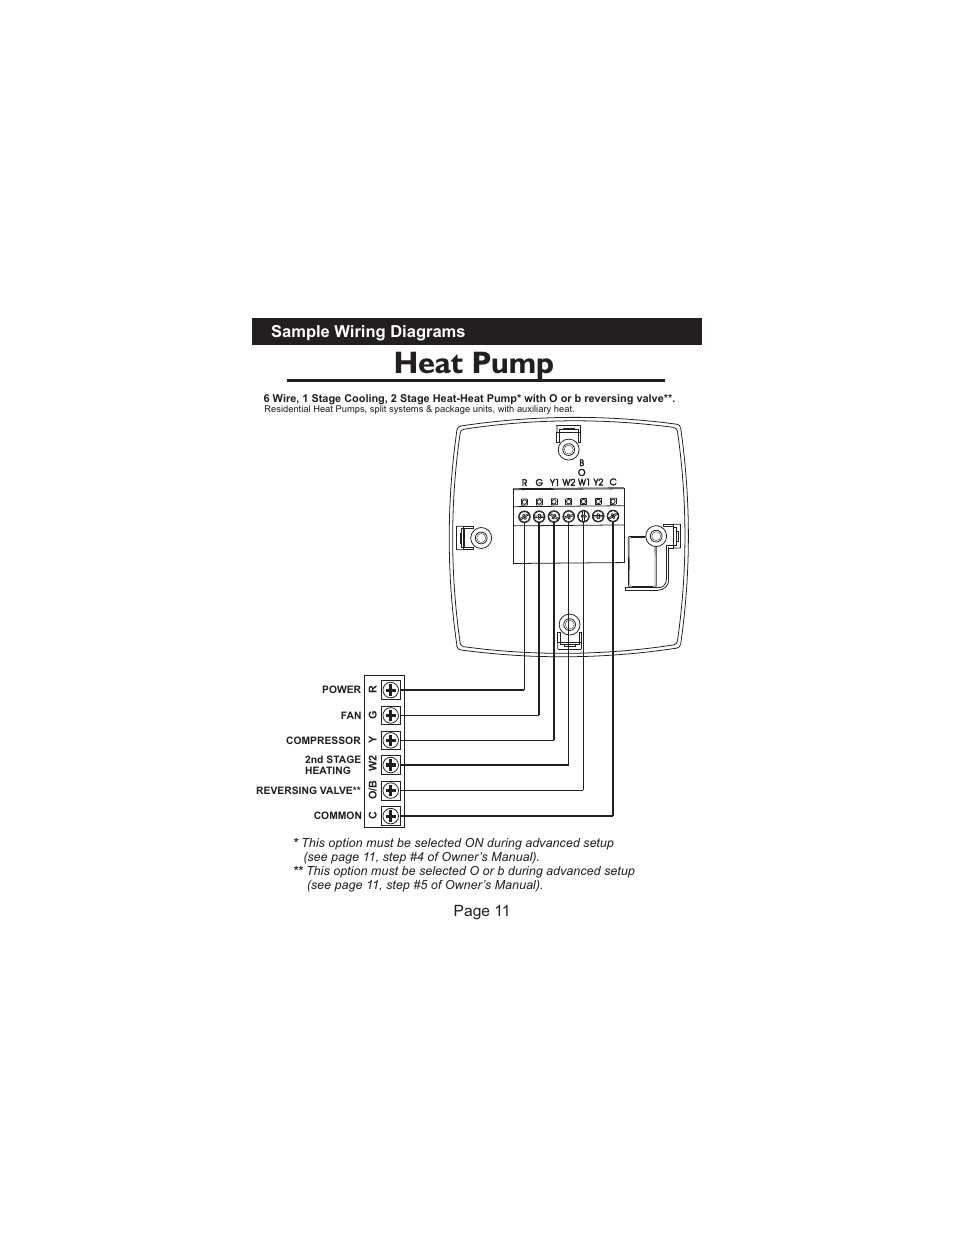 Heat pump, Sample wiring diagrams, Page 11 | Venstar T1010 Installation  User Manual | Page 12 / 15